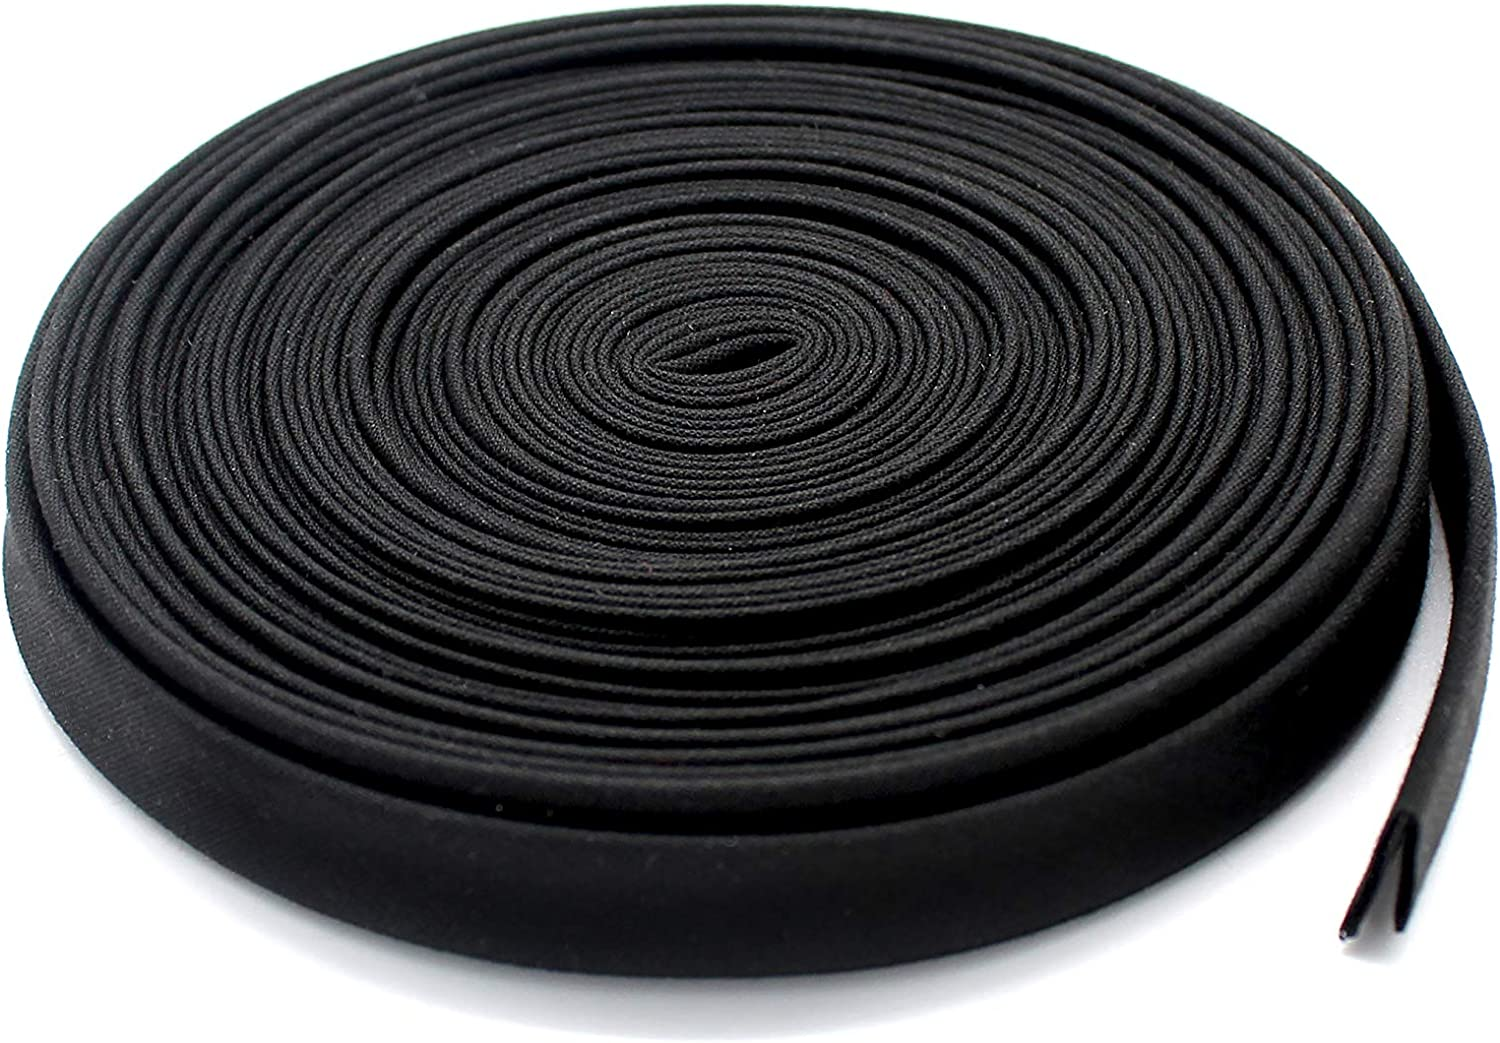 "1/2"" Wide Double-fold Bias Tape ~ Poly Cotton (10 Yards, Black) 81QF9SpD7HL"